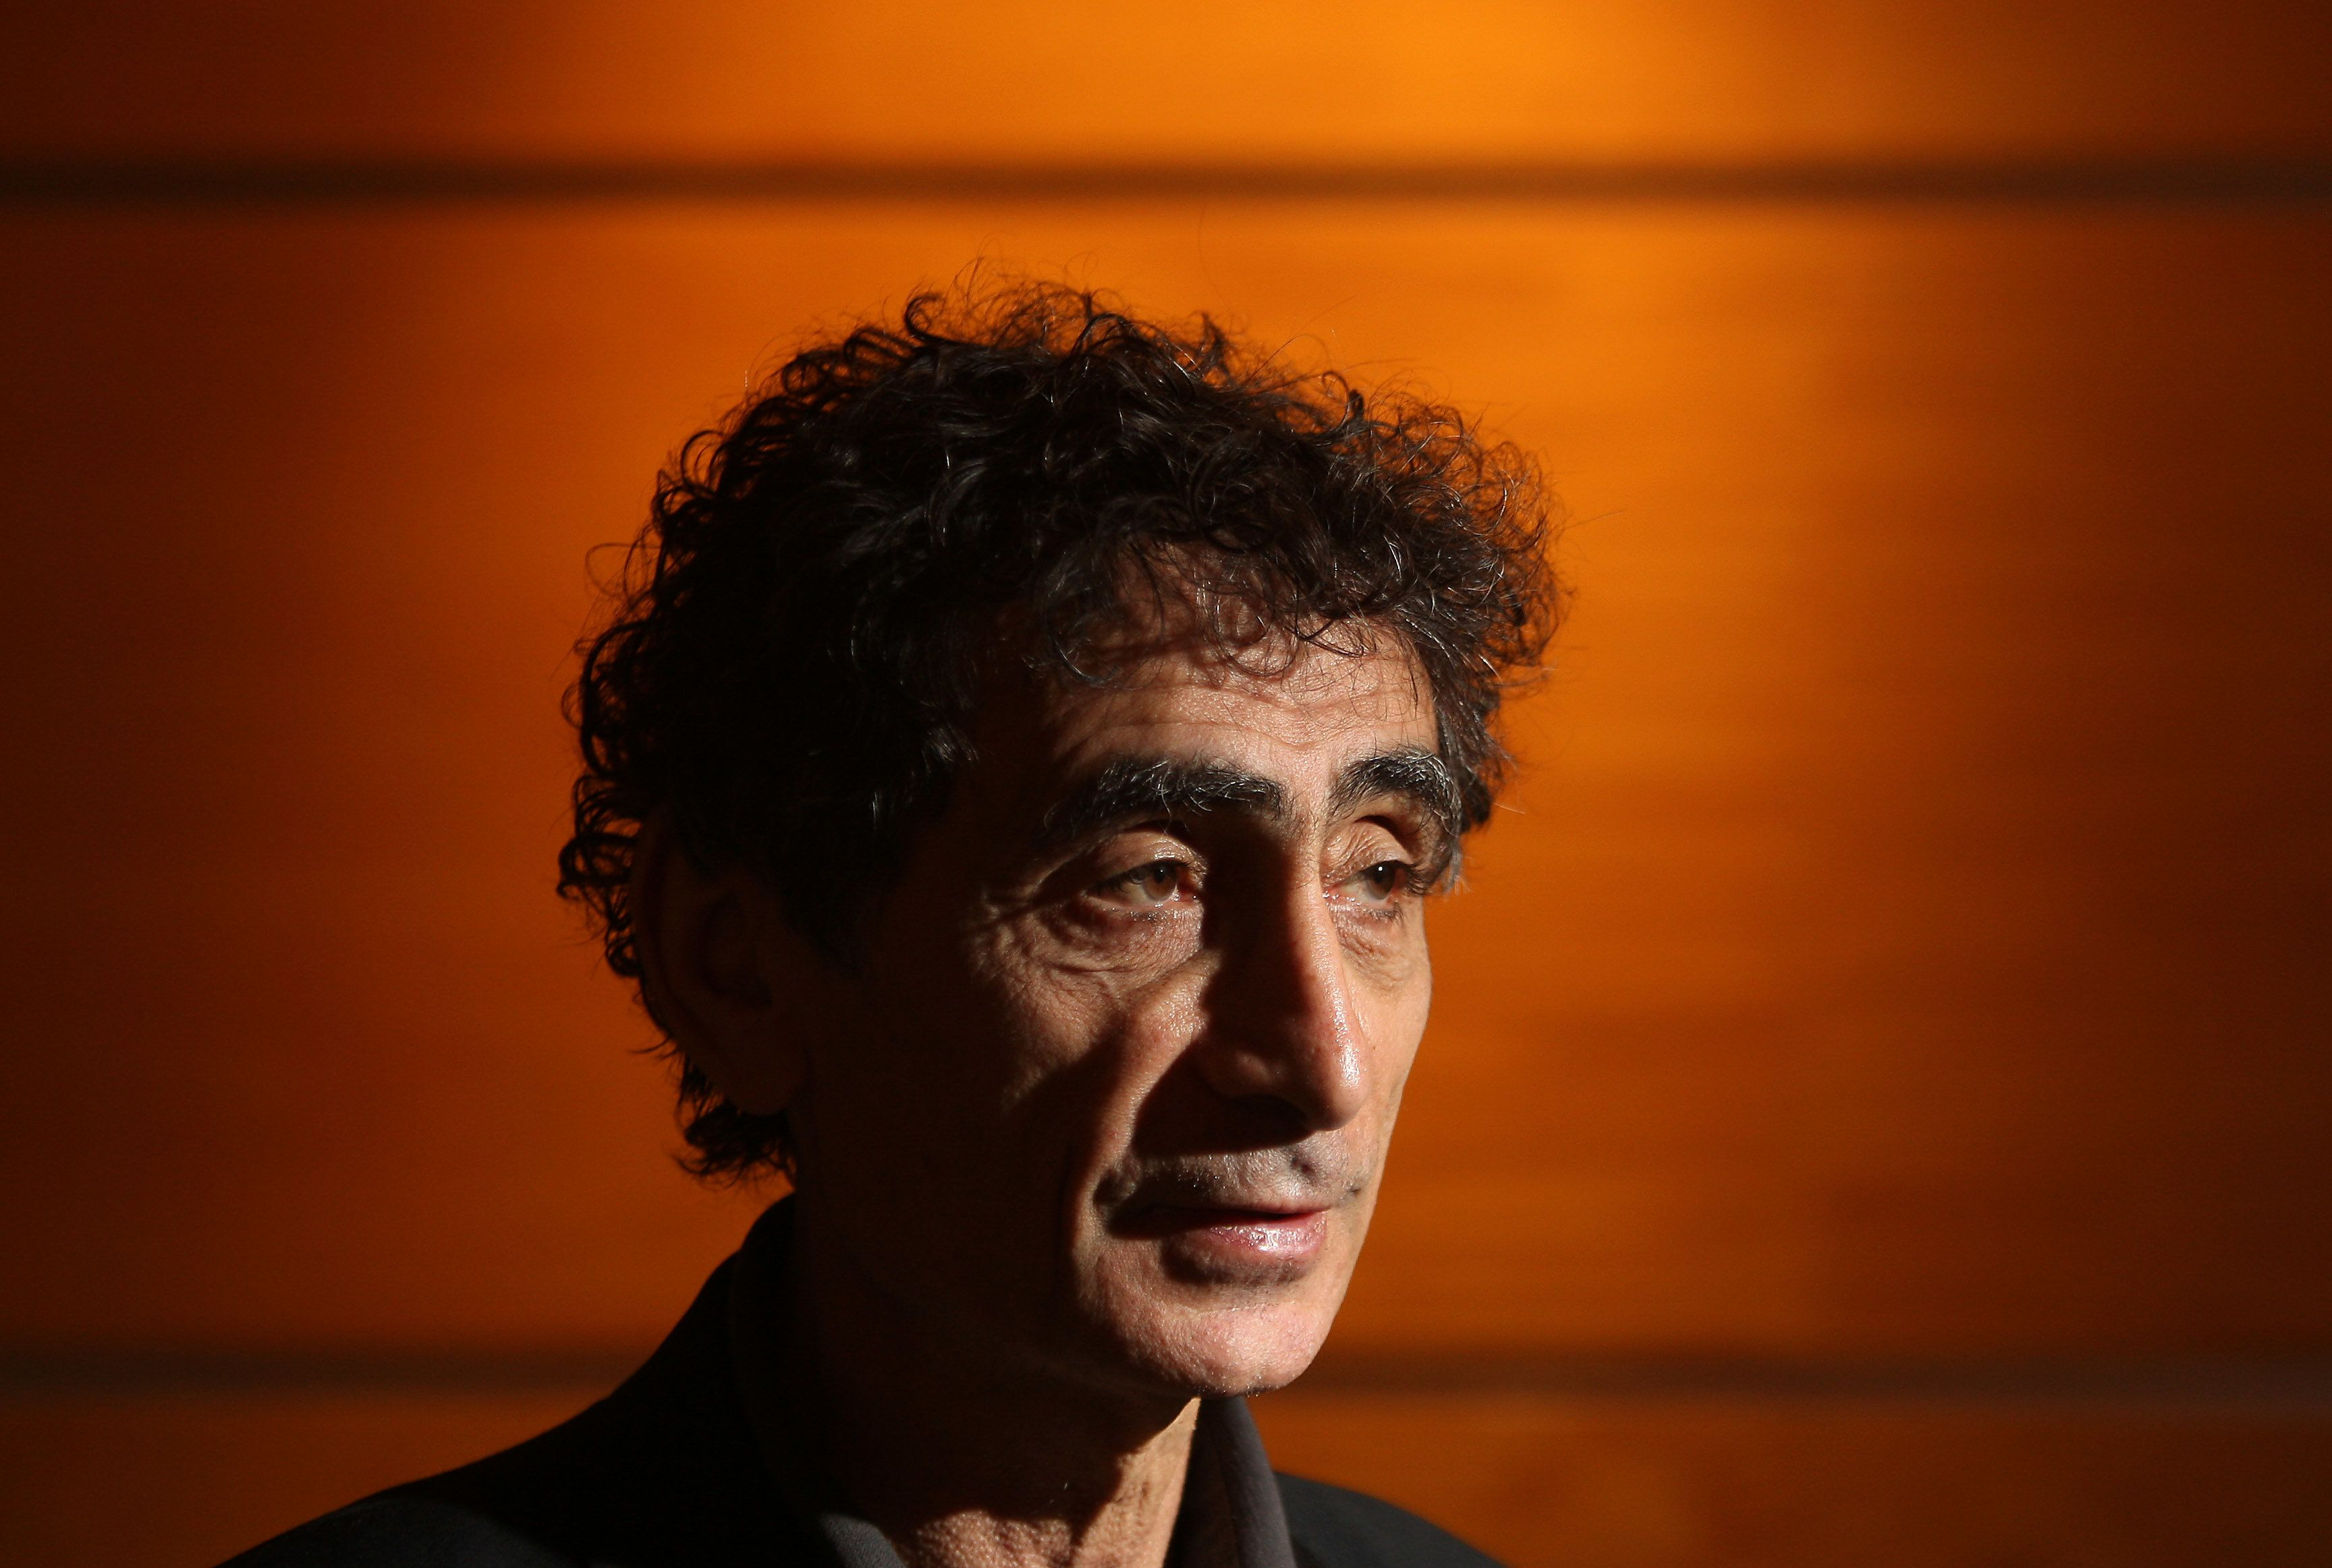 Renowned Vancouver physician Dr. Gabor Maté explains what he thinks we get wrong in treating addiction.